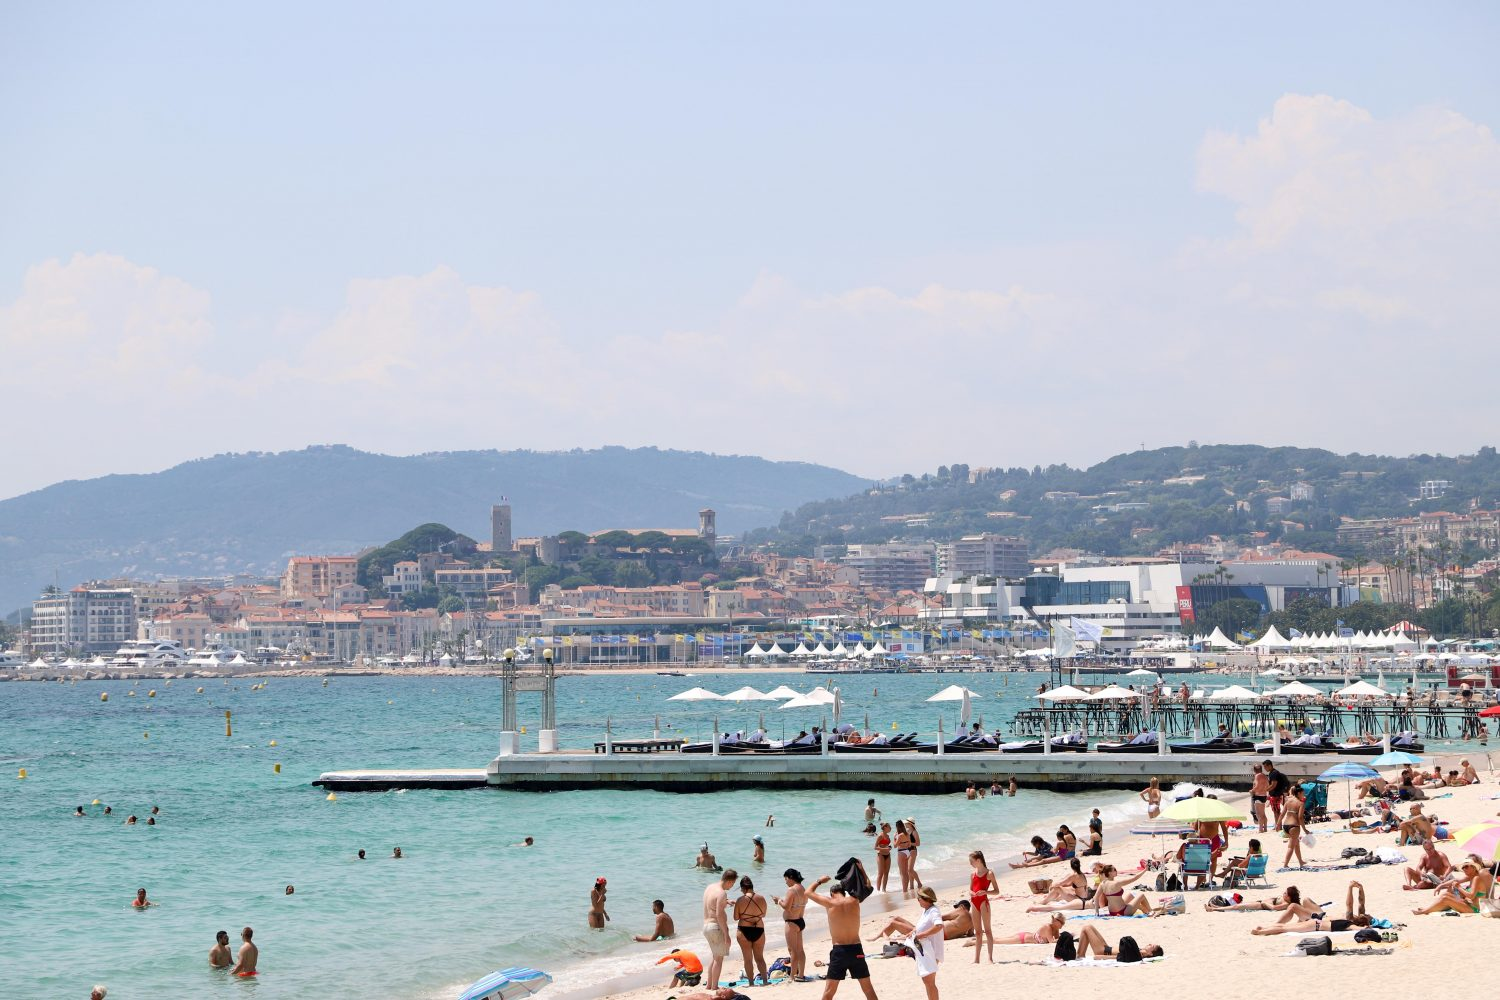 Cannes Croisette beaches